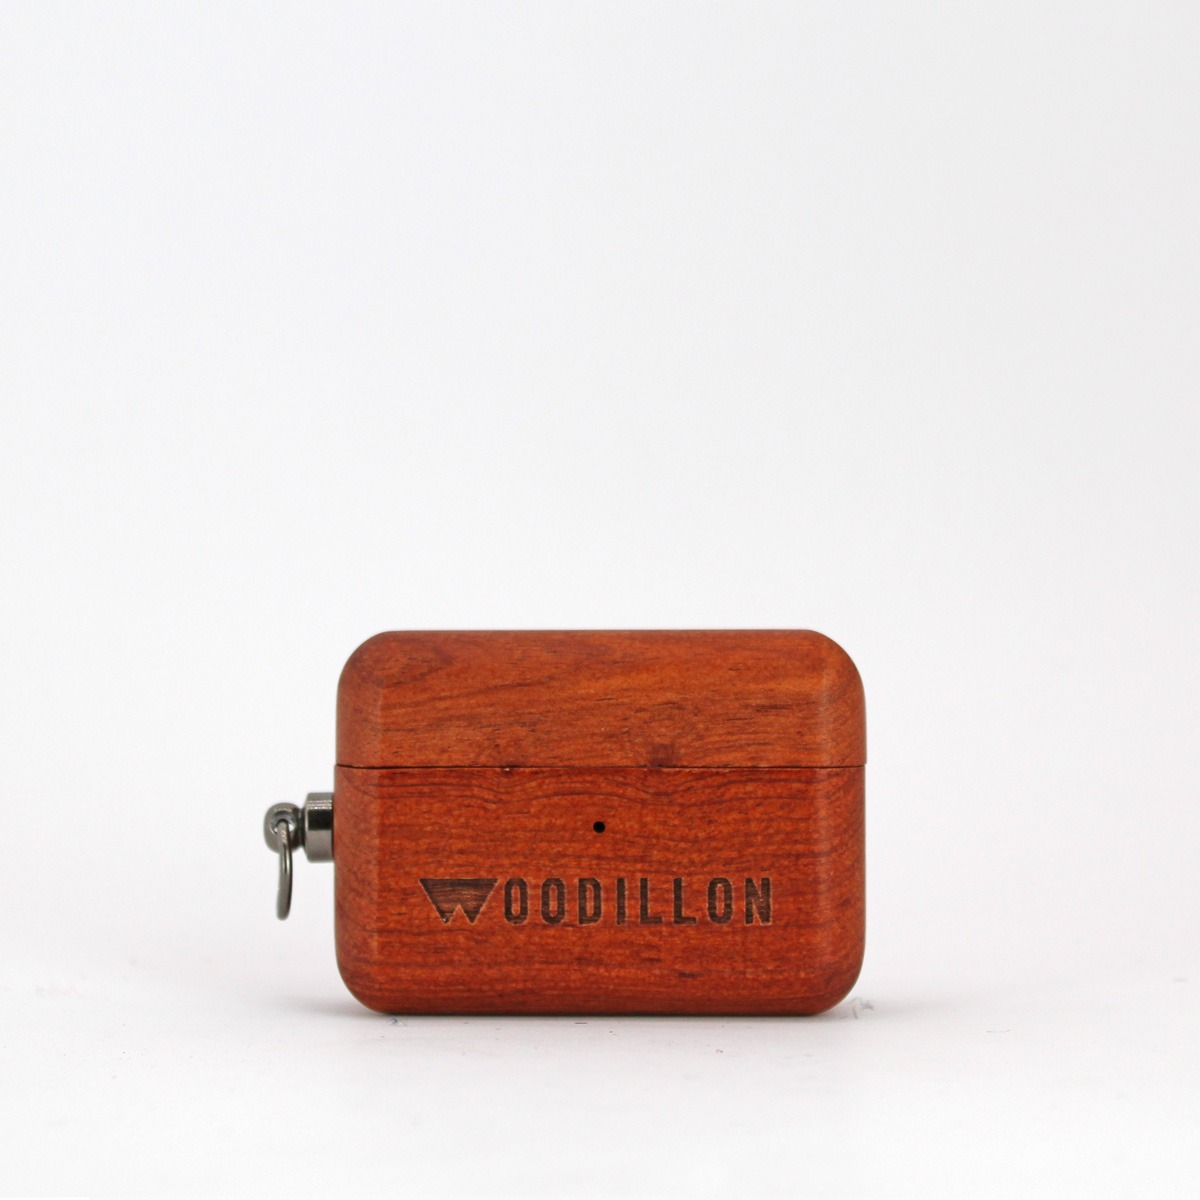 Airpods Case padouk per airpods pro, Woodillon